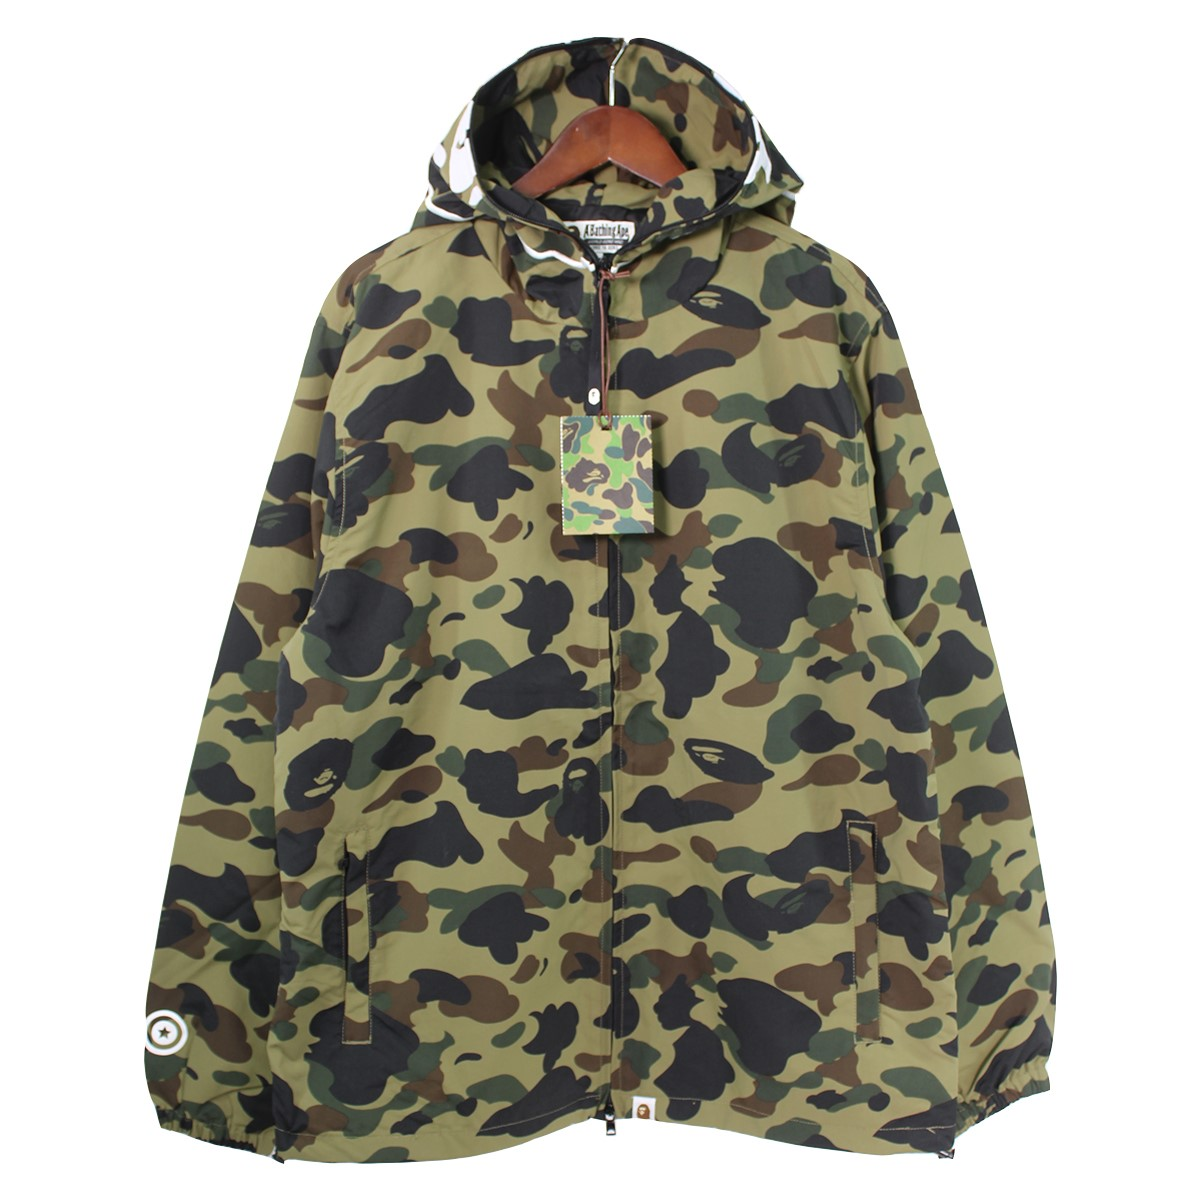 【中古】A BATHING APE 1ST CAMO 2ND APE FULL ZIP HOODIE JACKET カーキ サイズ:XL 【280220】(アベイシングエイプ)